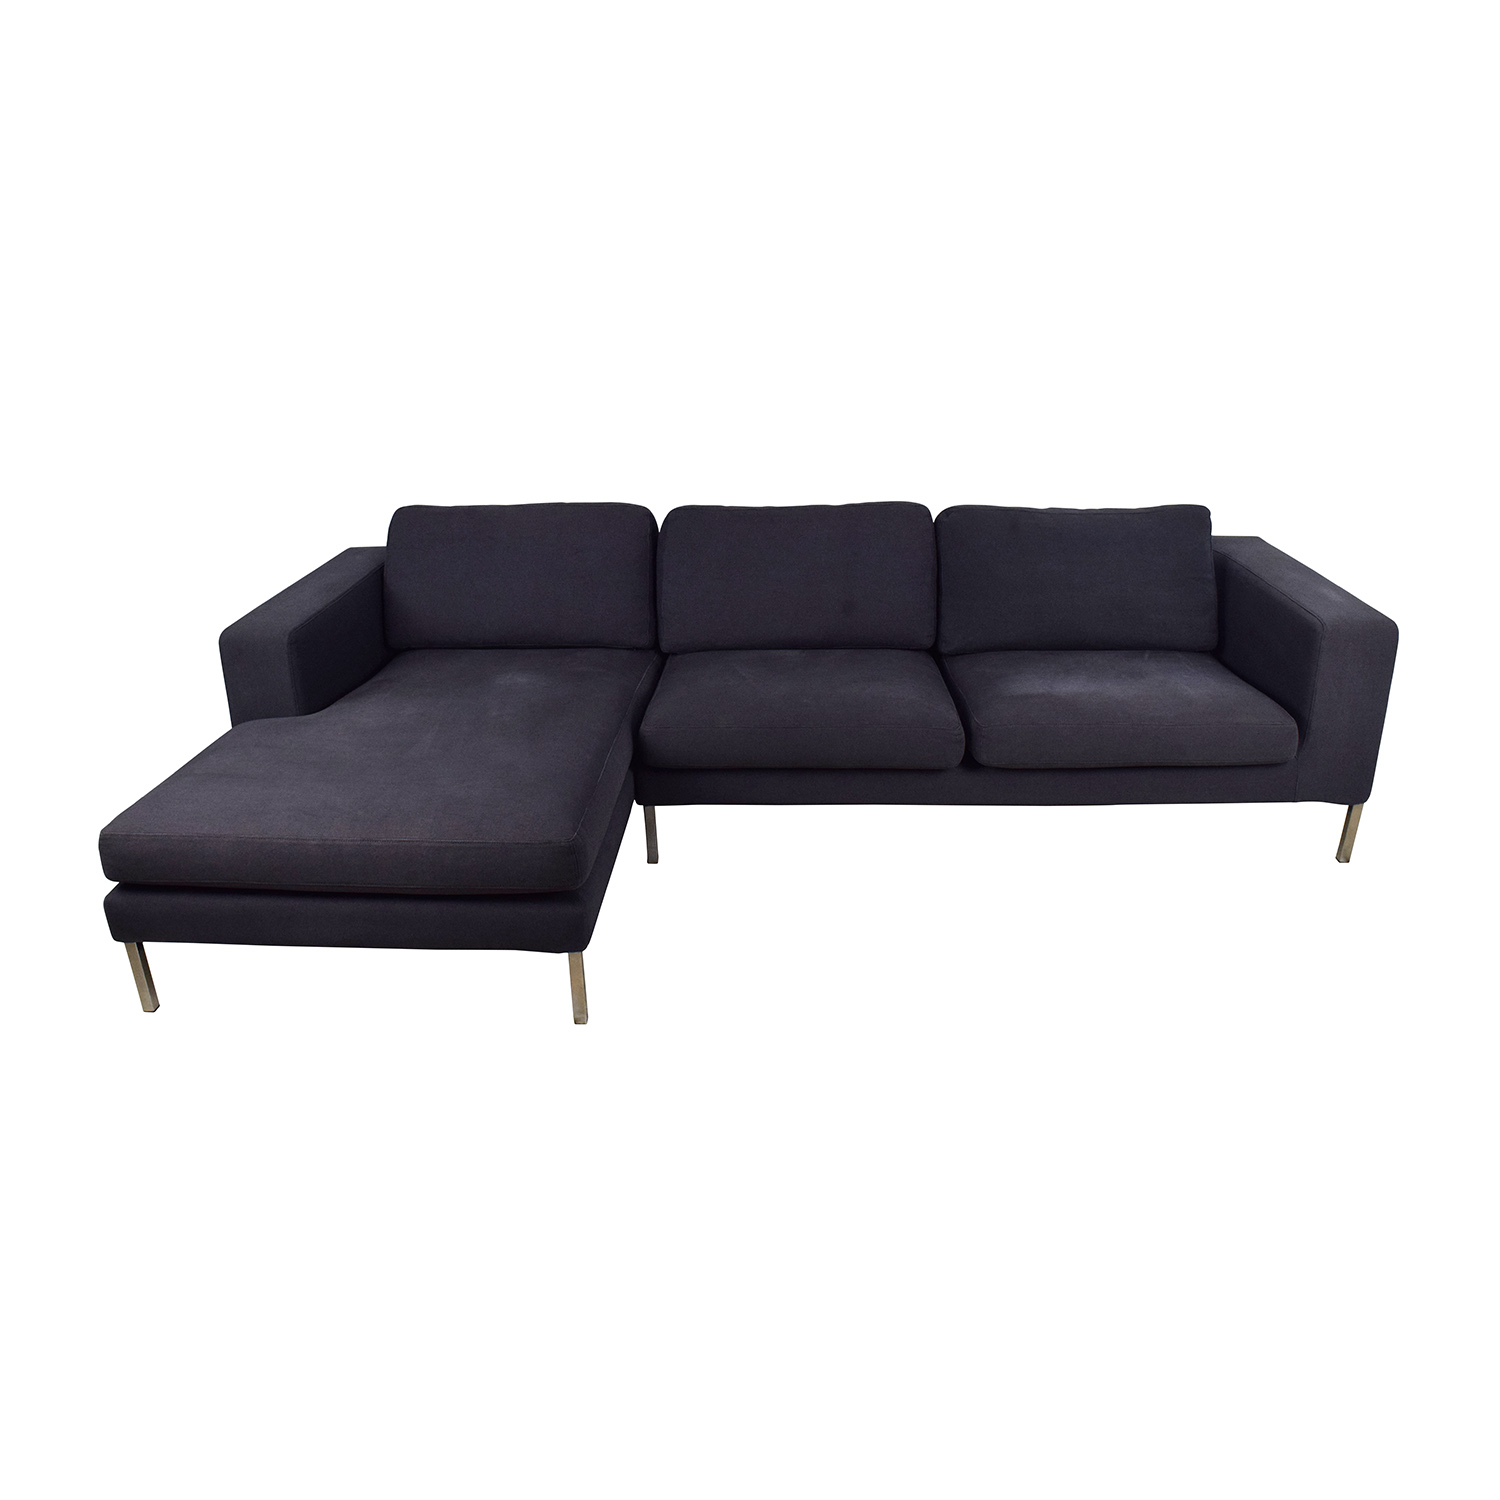 secondhand leather sofas danish style second hand sofa bed 2 year old for